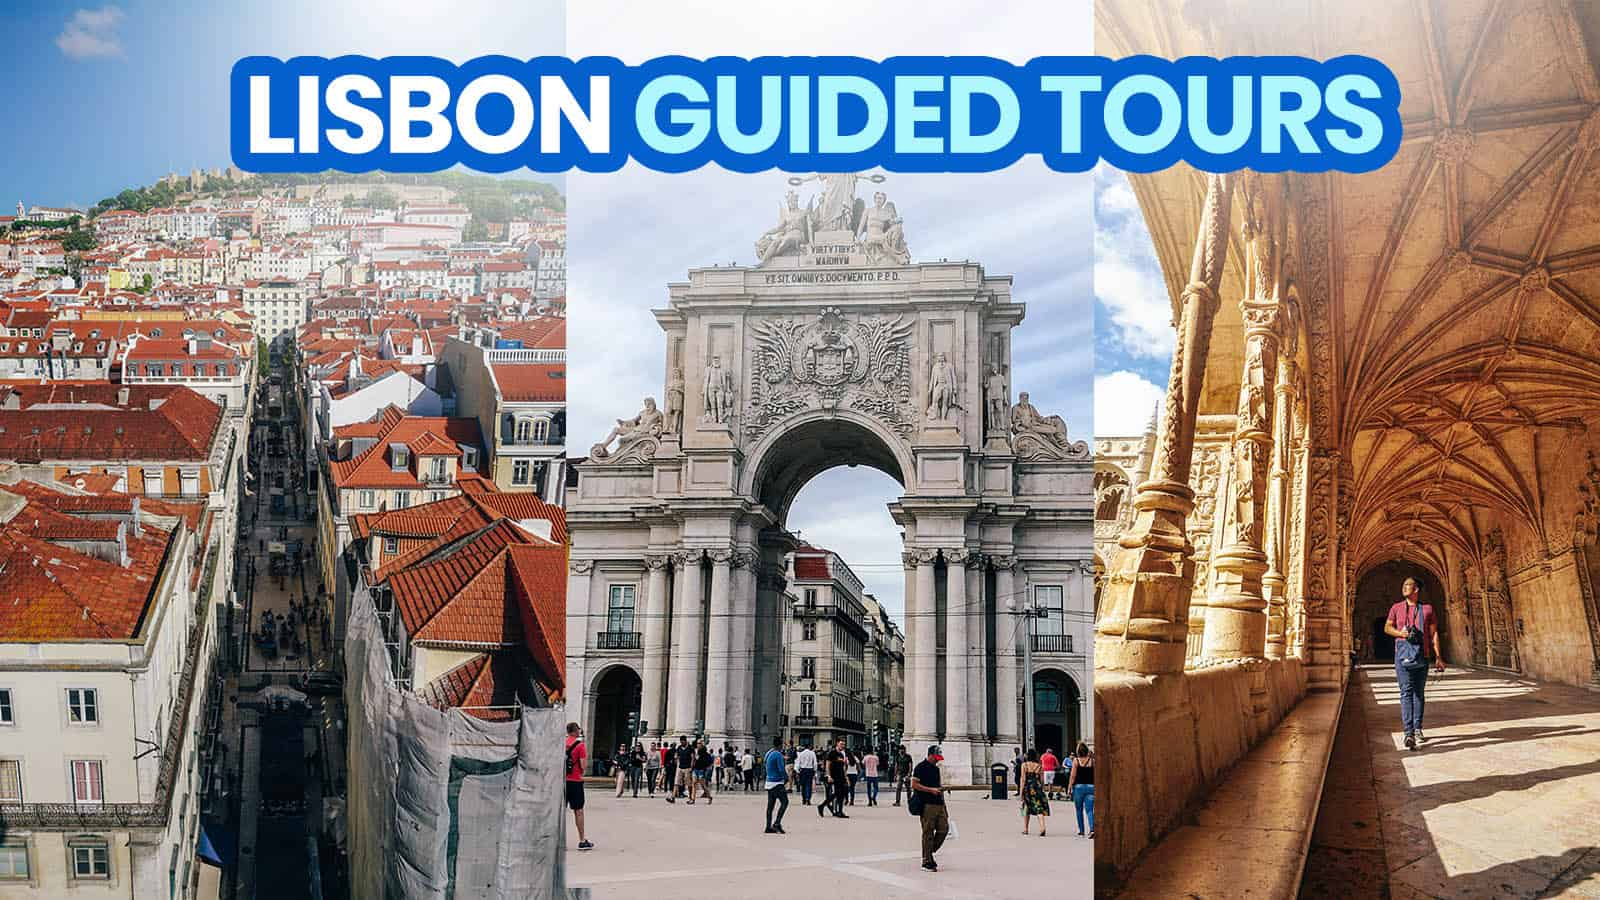 15 GUIDED CITY TOURS to Consider in LISBON, PORTUGAL